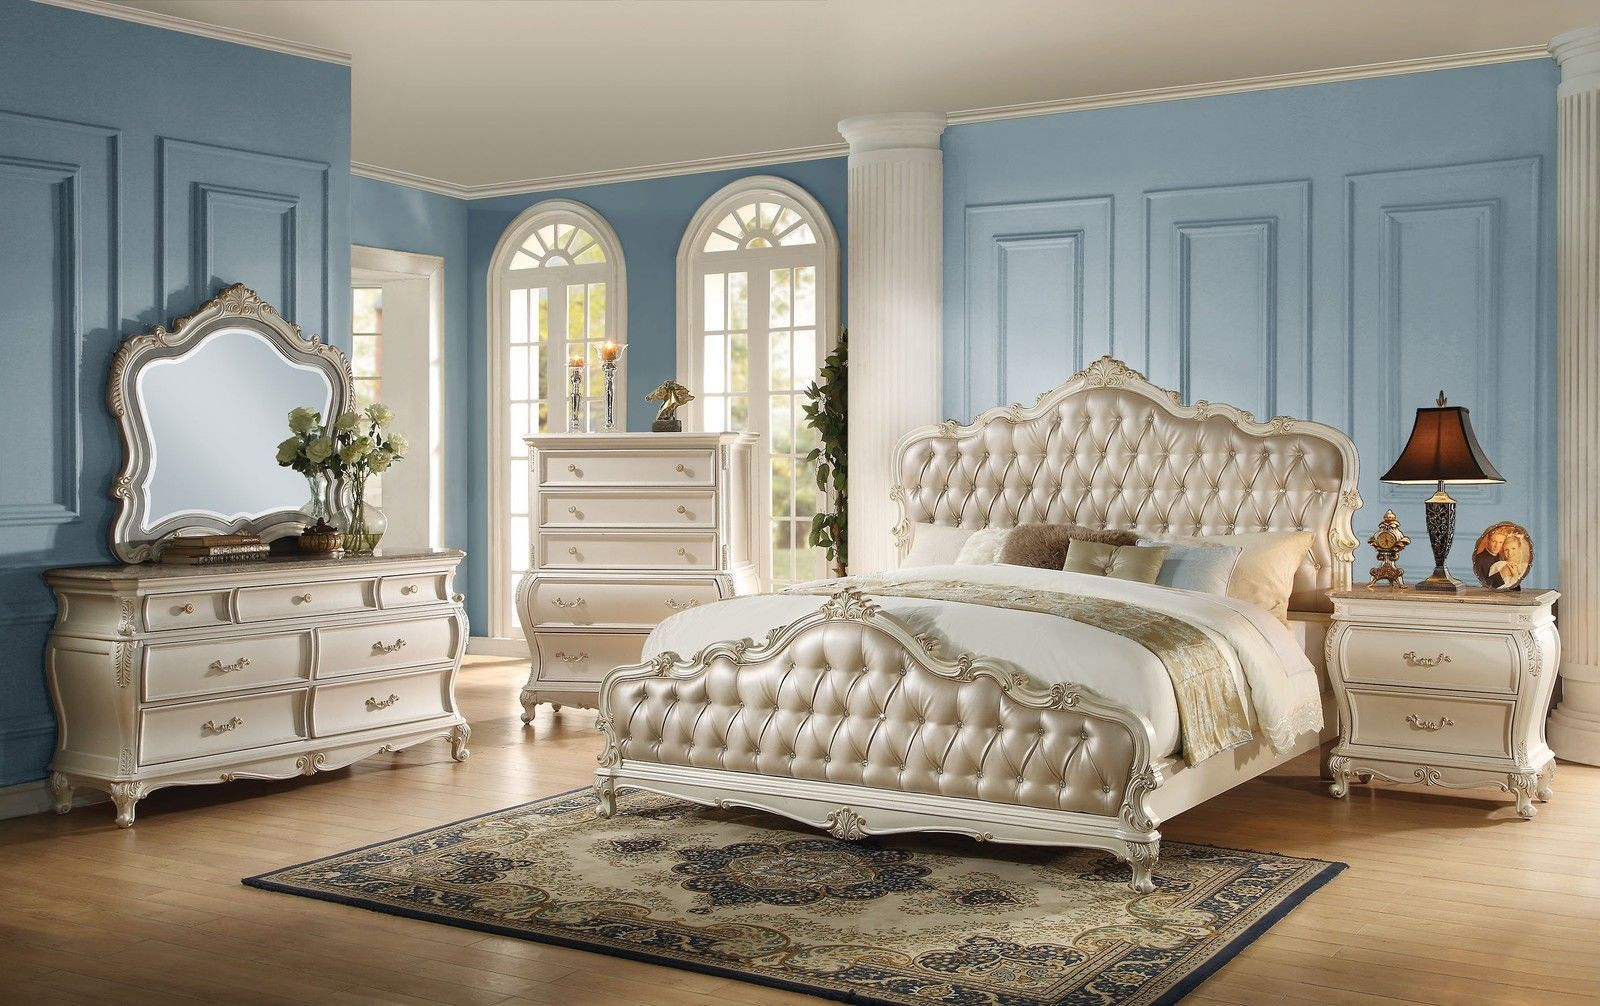 Merveilleux Luxurious Chantelle Pearl U0026 Rose Gold King Bedroom Set 6pc + Free Shipping